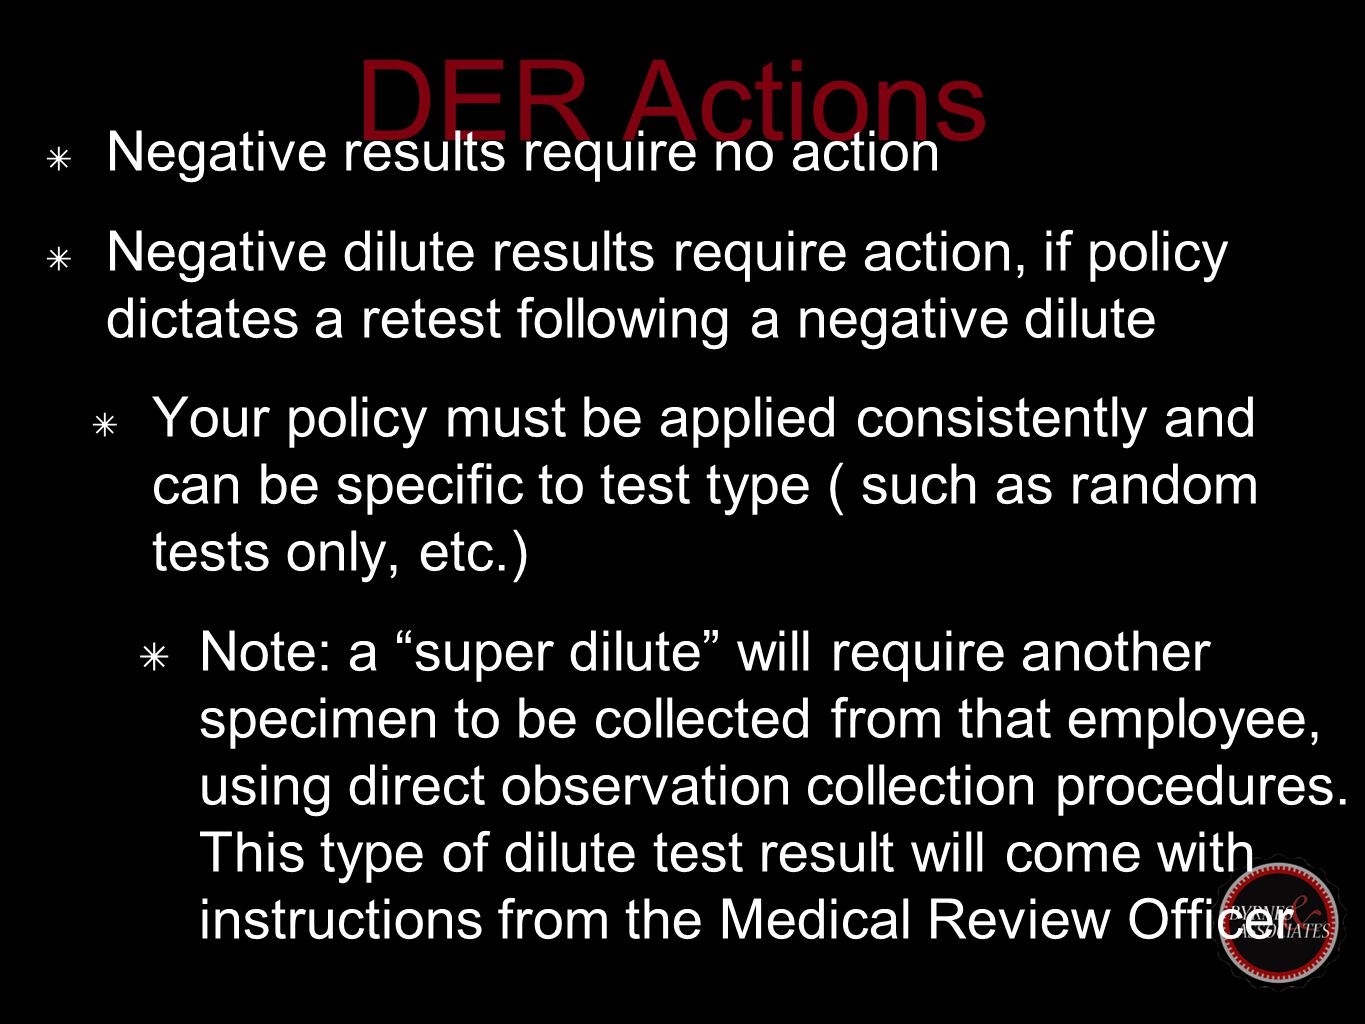 DER Actions ✴ Negative results require no action ✴ Negative dilute results require action, if policy dictates a retest following a negative dilute ✴ Your policy must be applied consistently and can be specific to test type ( such as random tests only, etc.) ✴ Note: a super dilute will require another specimen to be collected from that employee, using direct observation collection procedures.